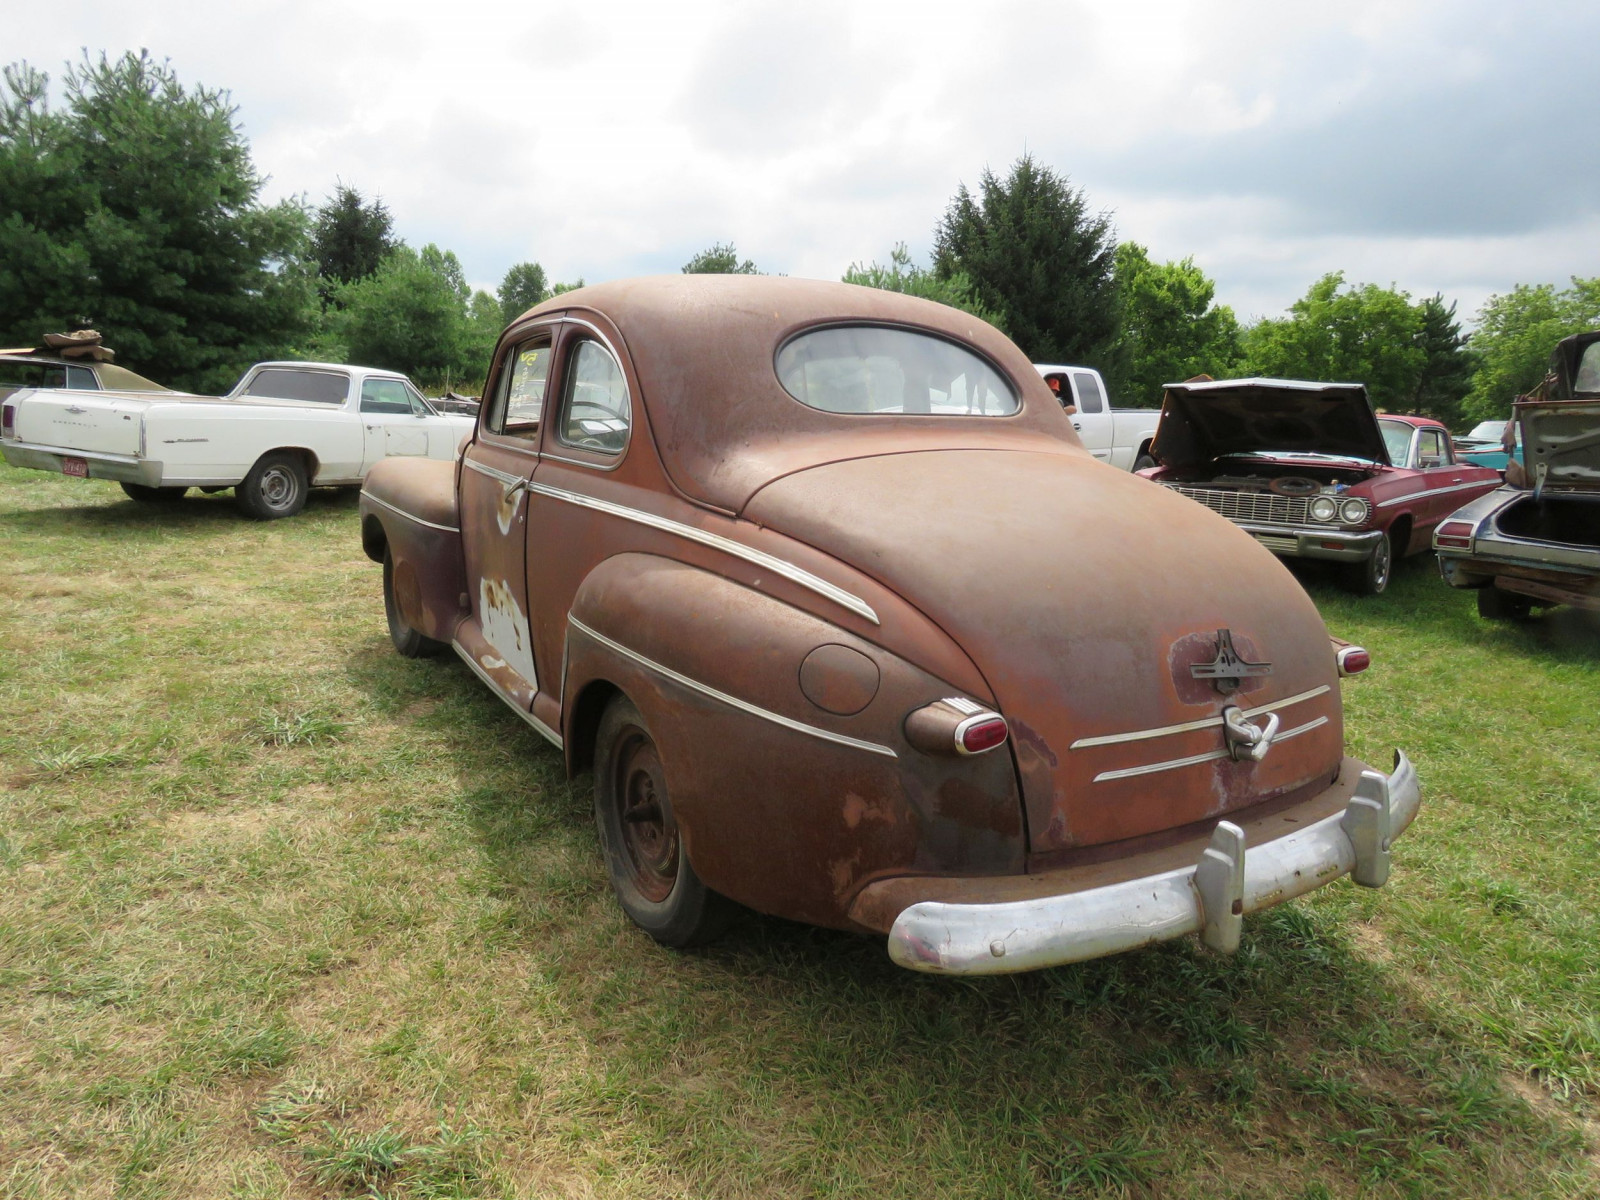 1946 Ford Super Deluxe Coupe Ford for Rod or Restore - Image 5